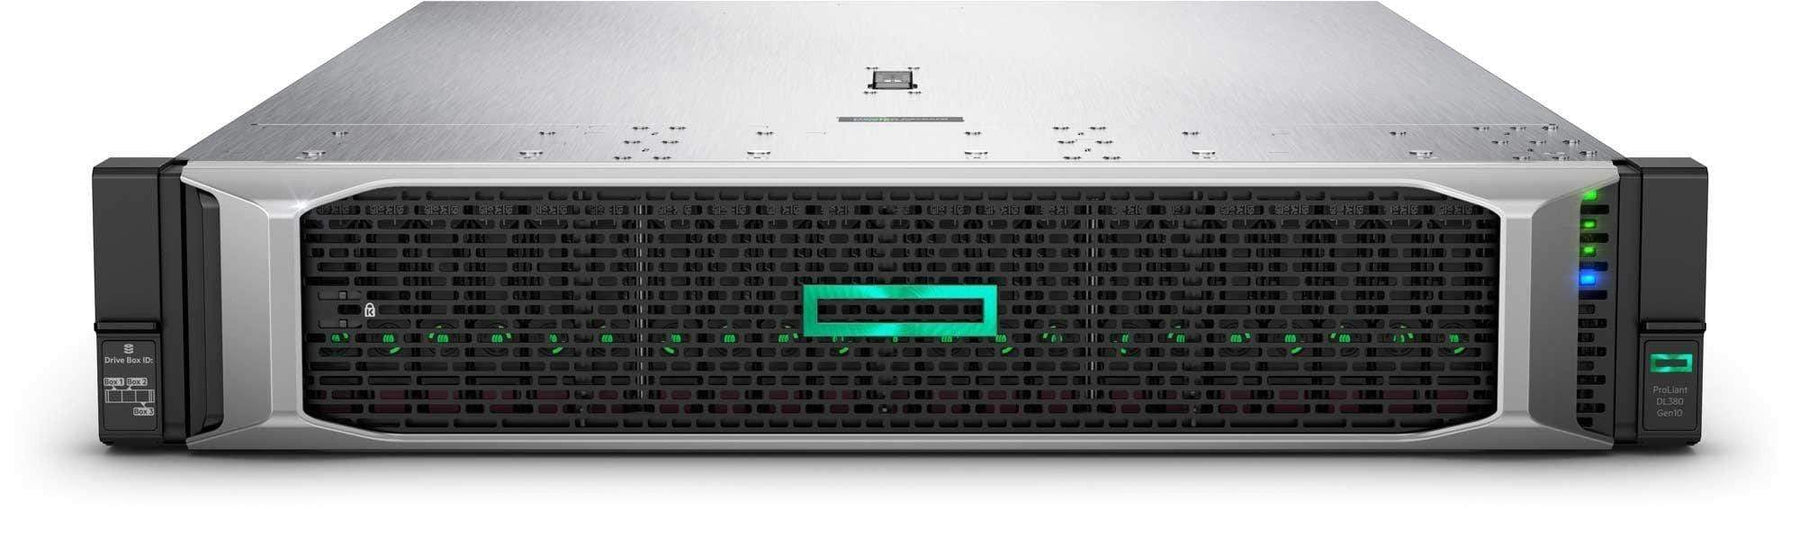 868703-B21 - HPE DL380 GEN10 8 SFF CTO Server